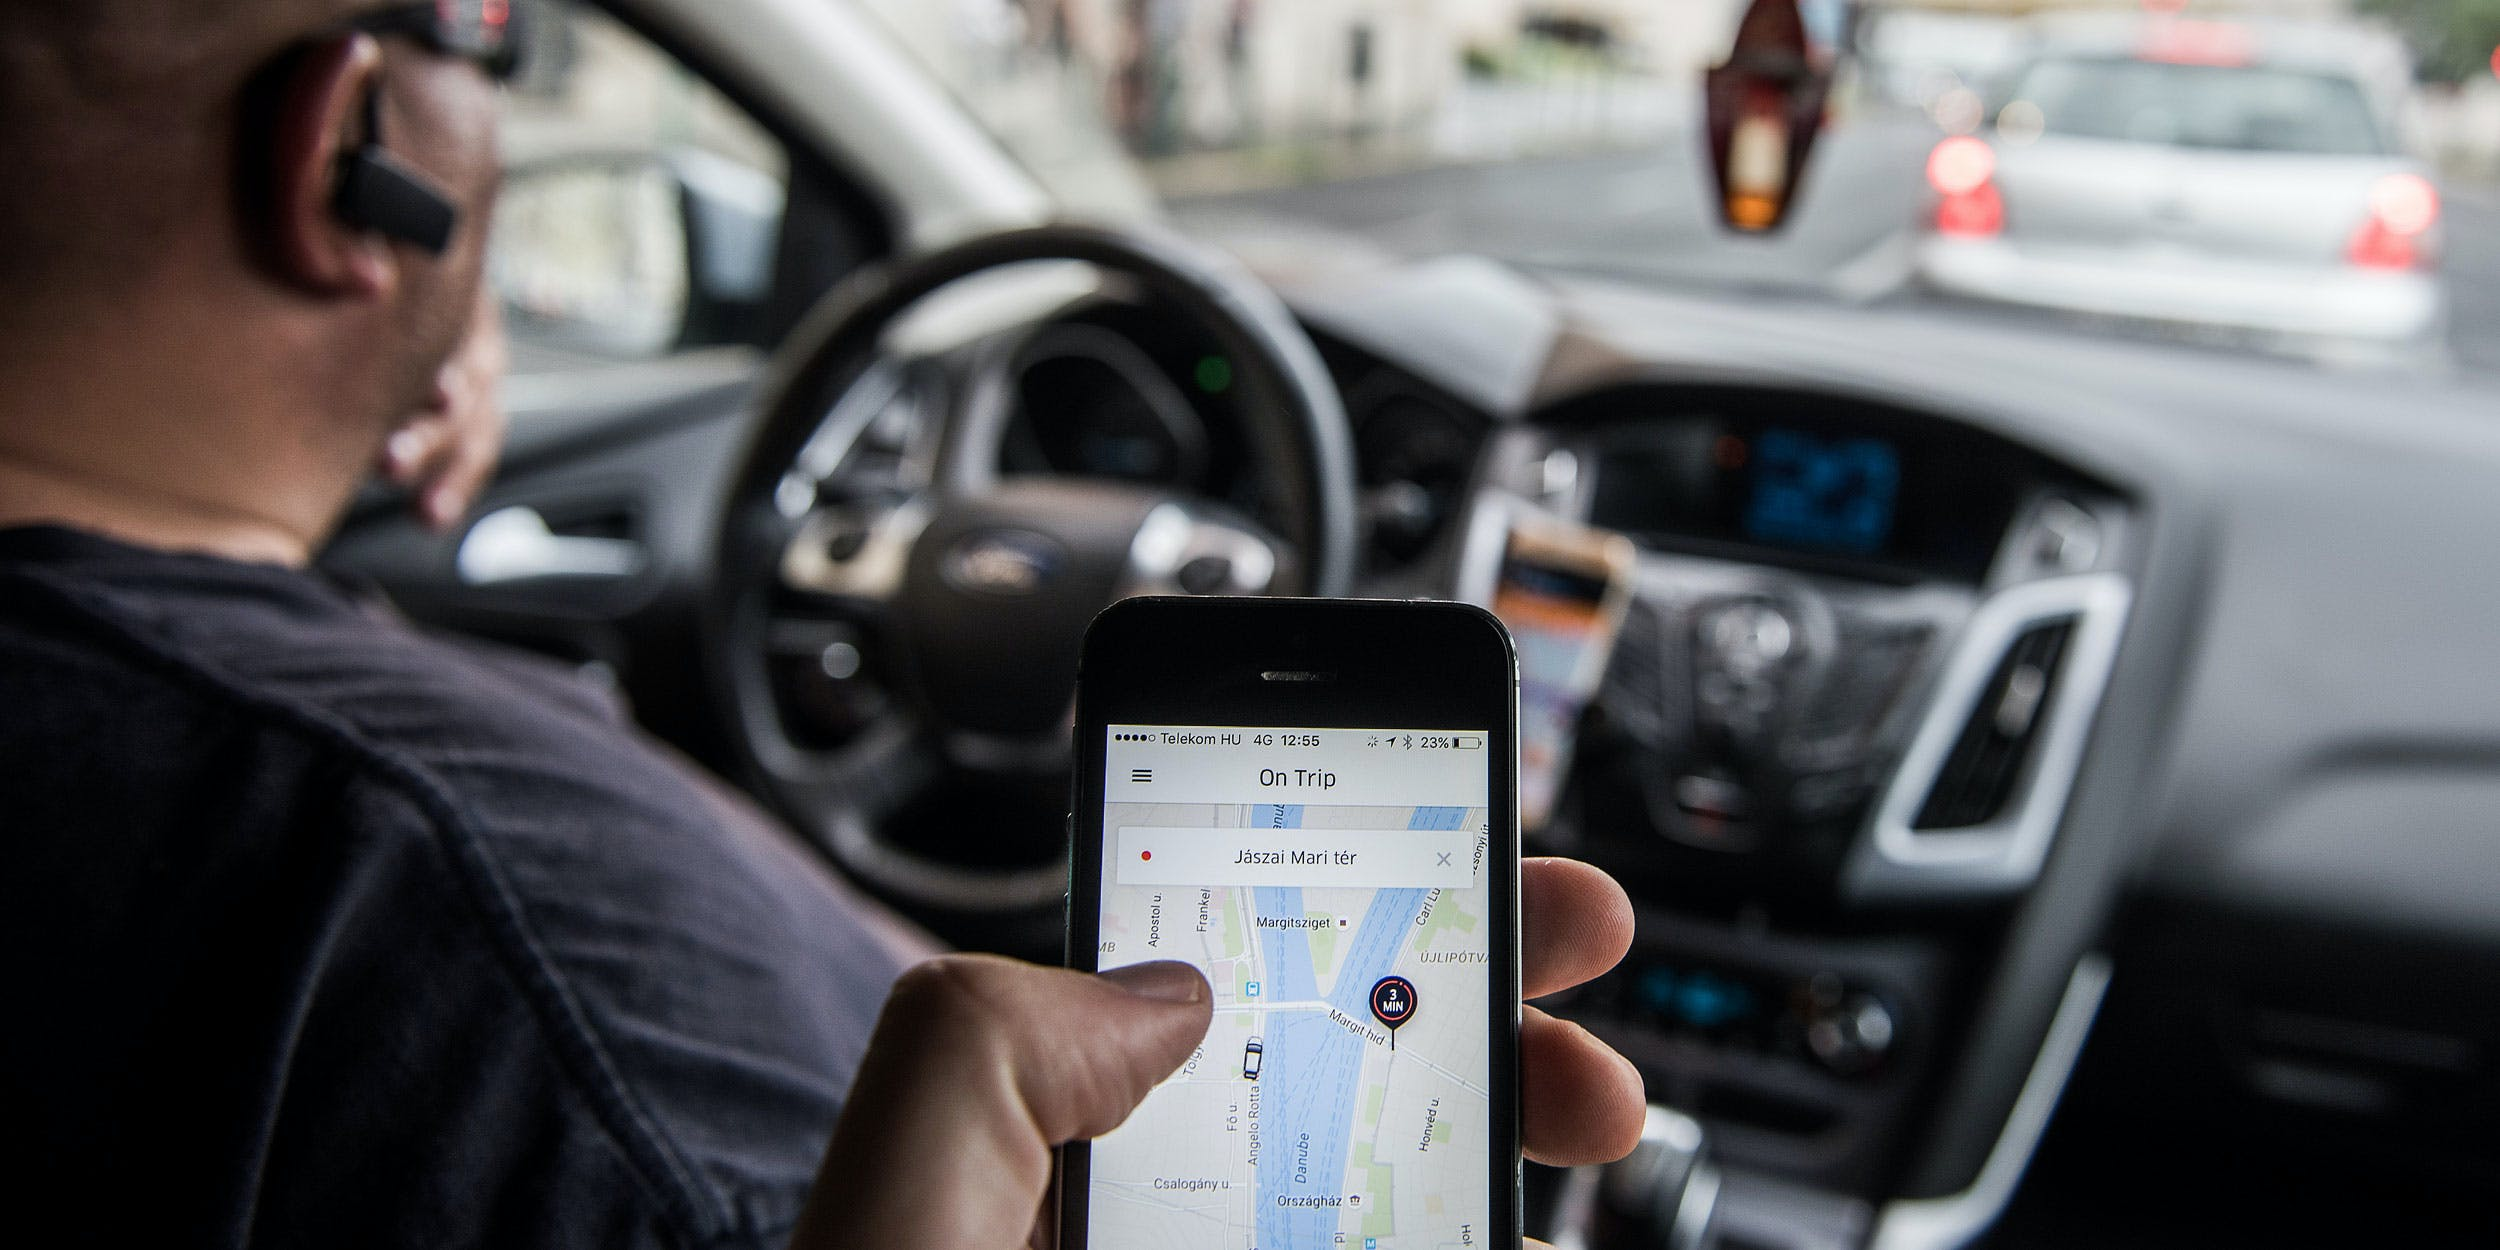 A passenger holds an iPhone displaying the Uber Technologies Inc. car service taxi application.